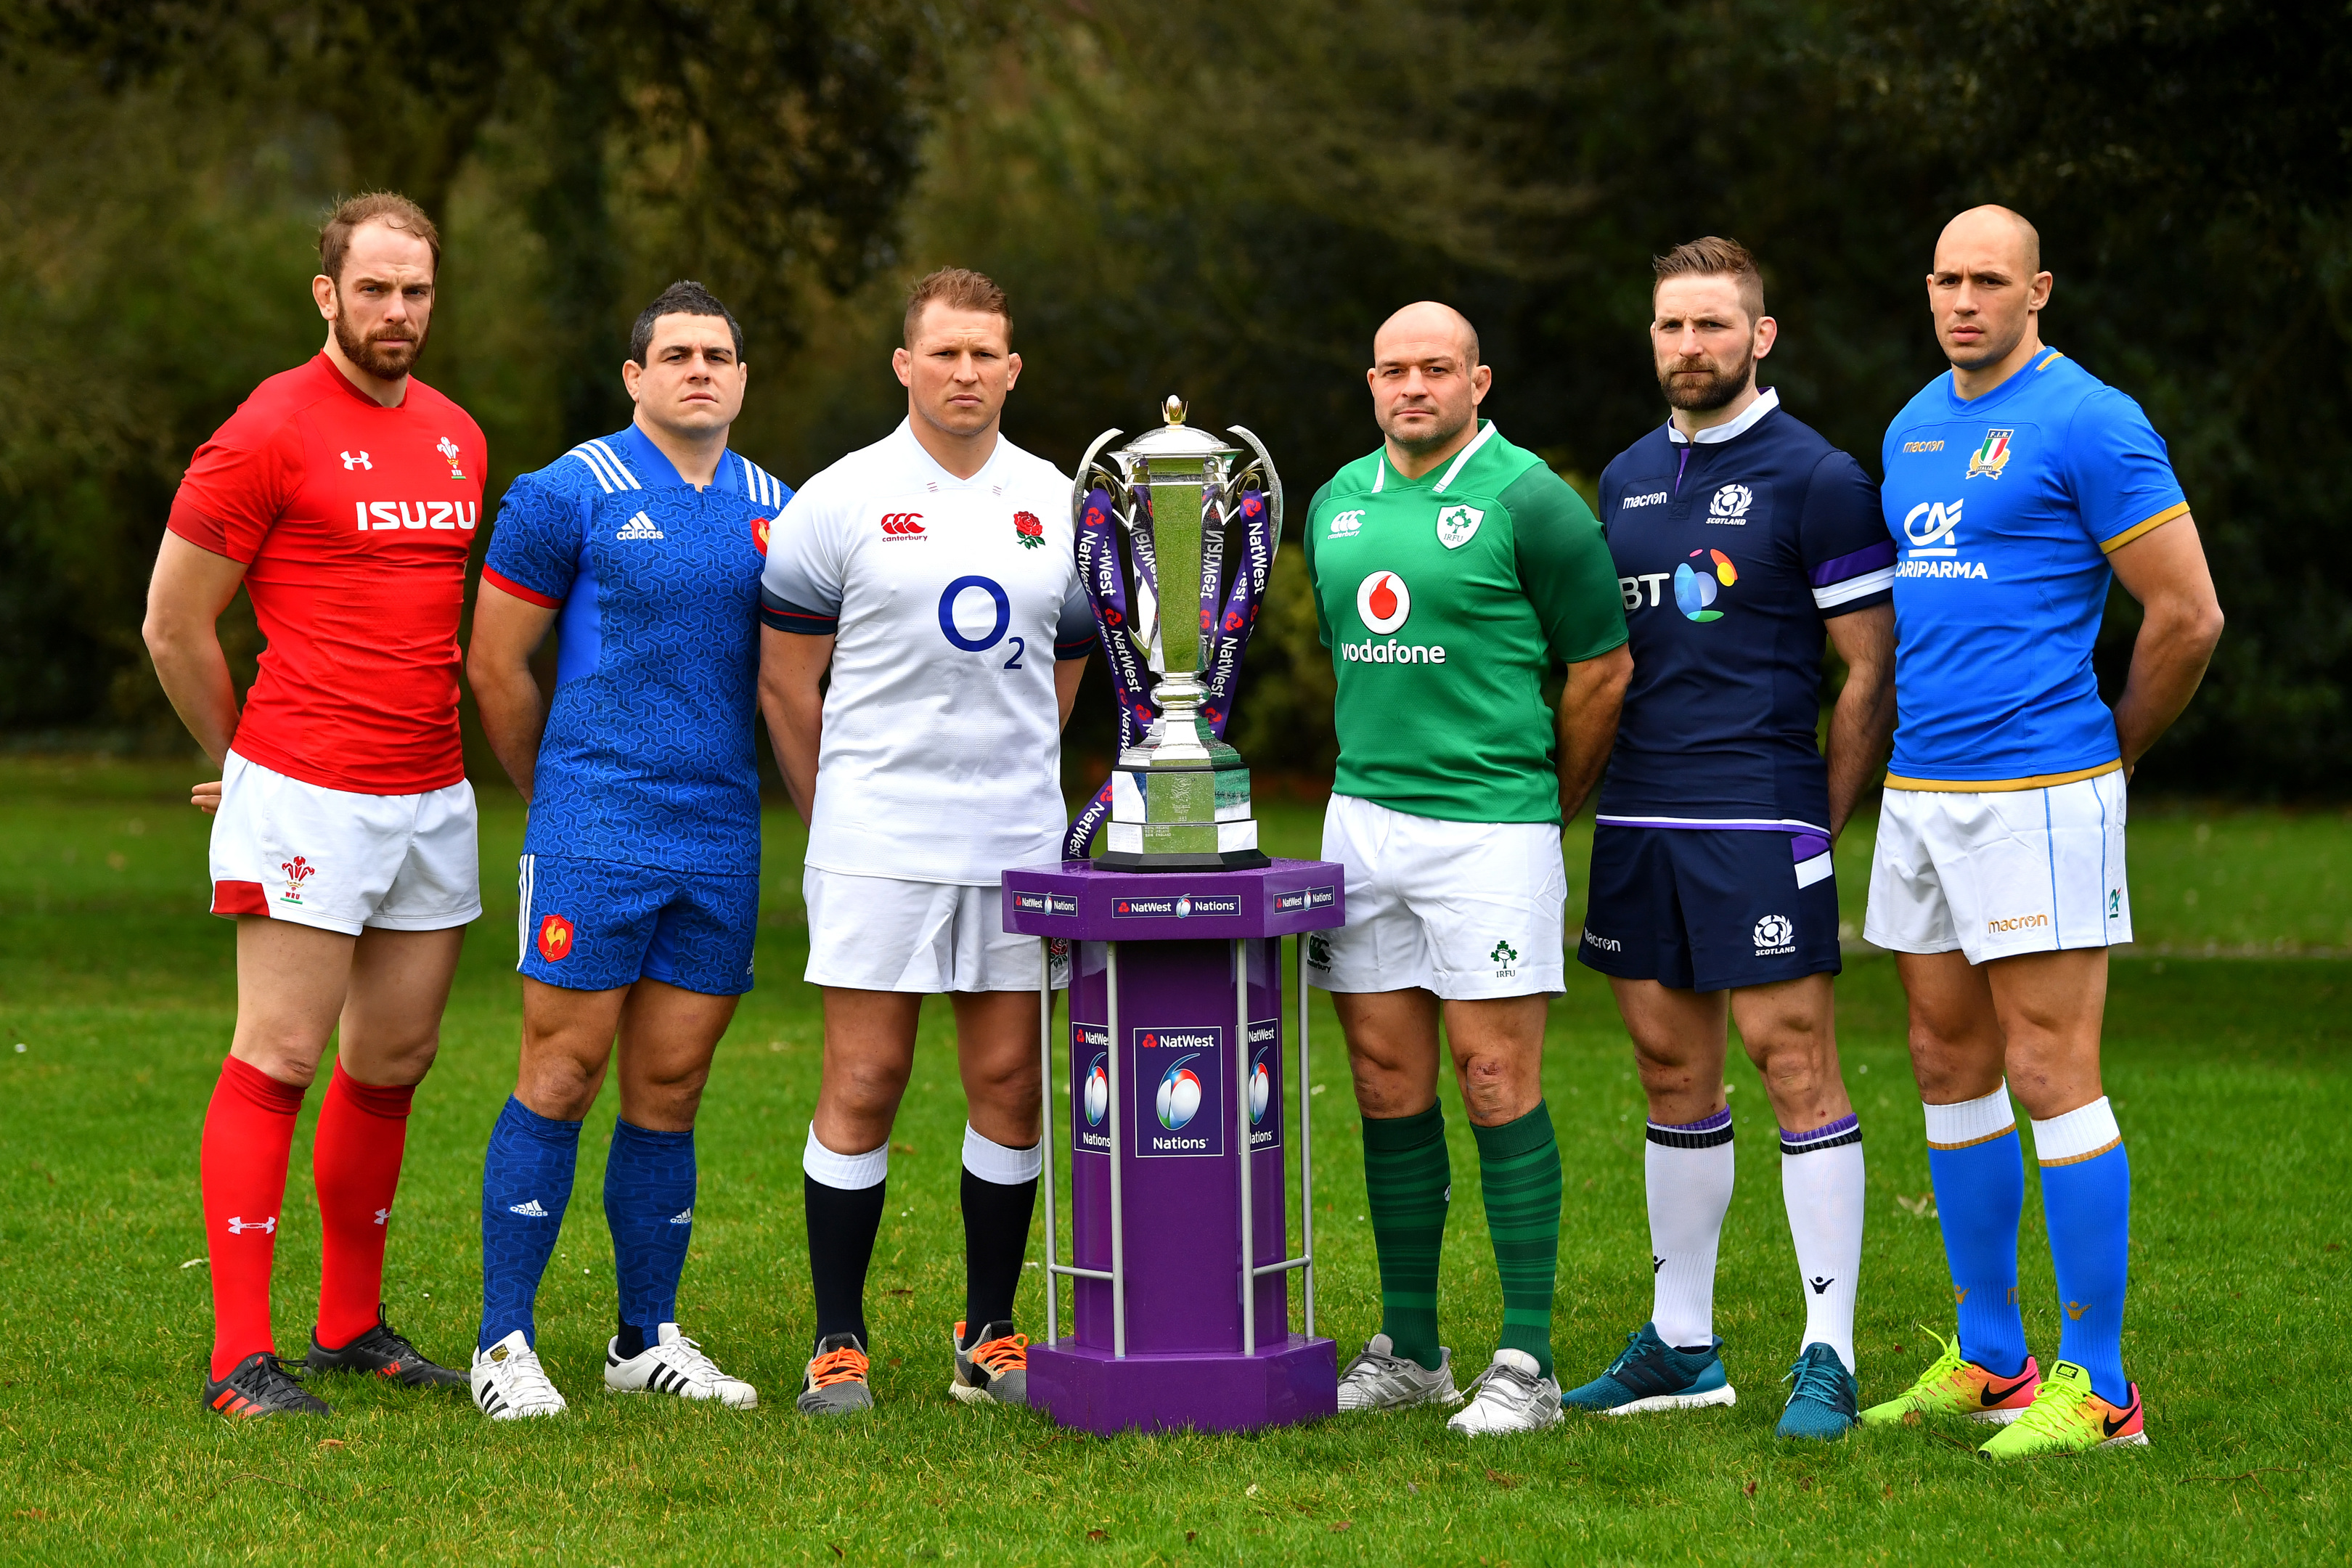 The captains of the NatWest 6 Nations Championship for 2018 with the trophy.